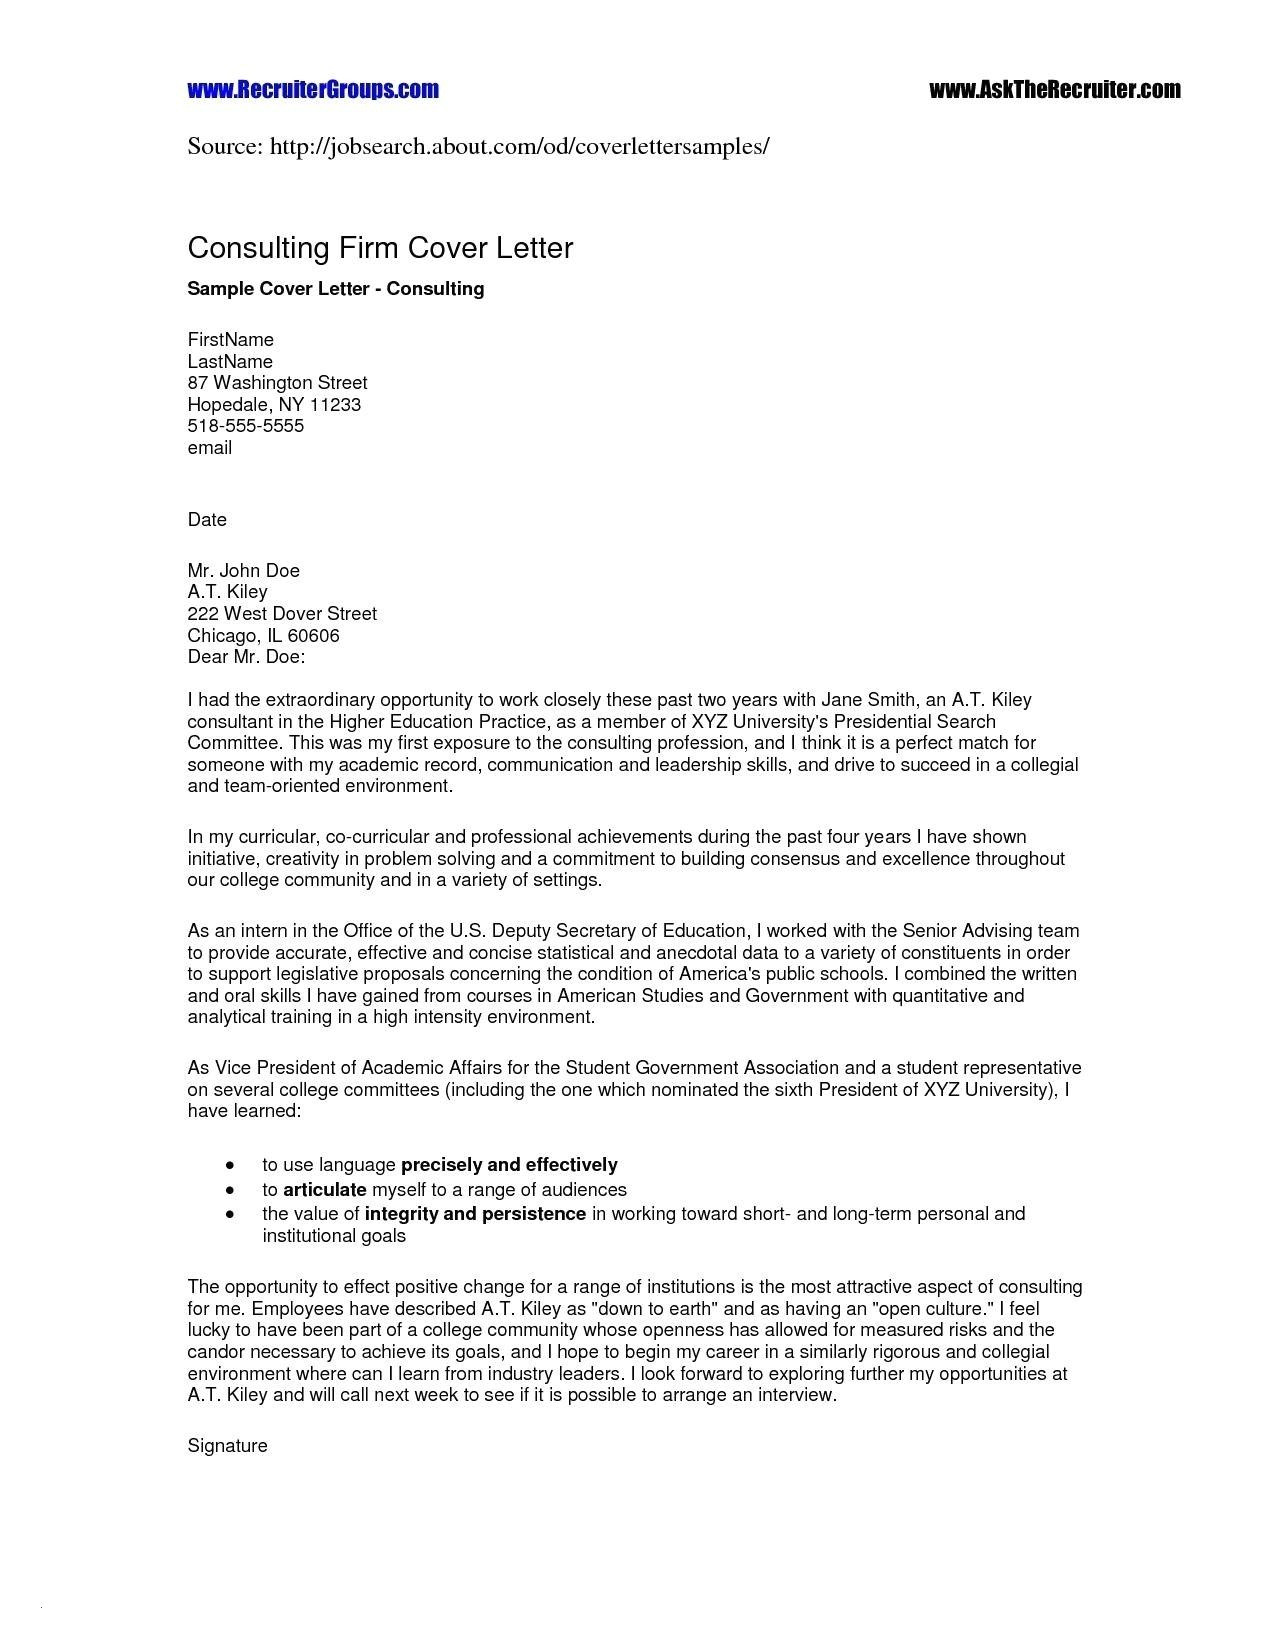 sample resume call center applicant without experience new leasing agent cover letter best resume for call center agent unique